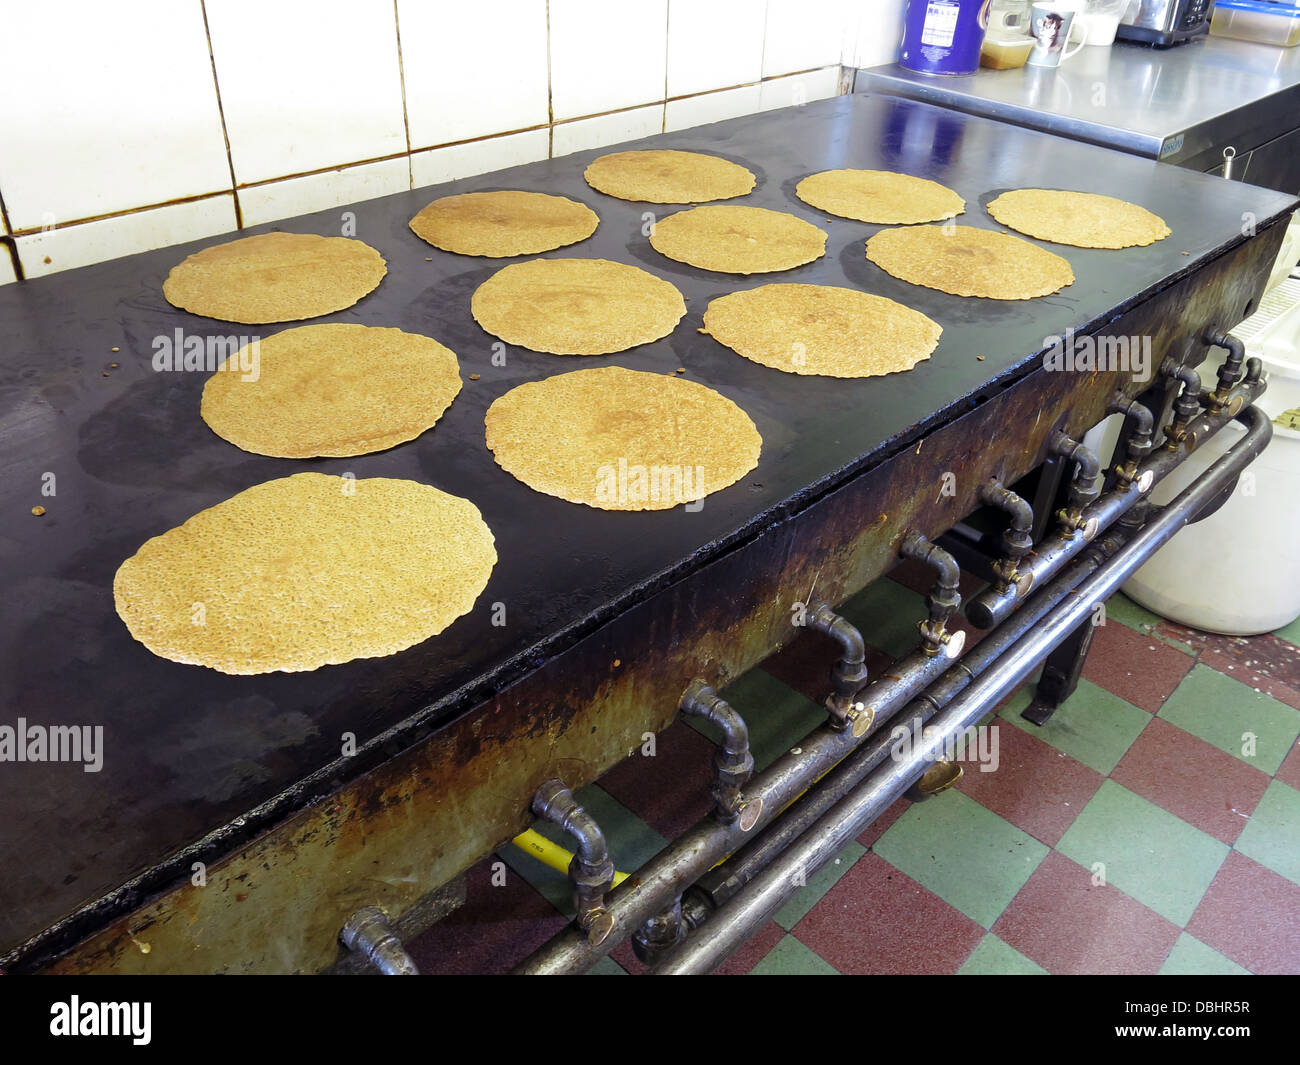 Interior of a traditional Stoke / Staffordshire Oatcake shop, with bright yellow frontage, cooking on an iron griddle - Stock Image